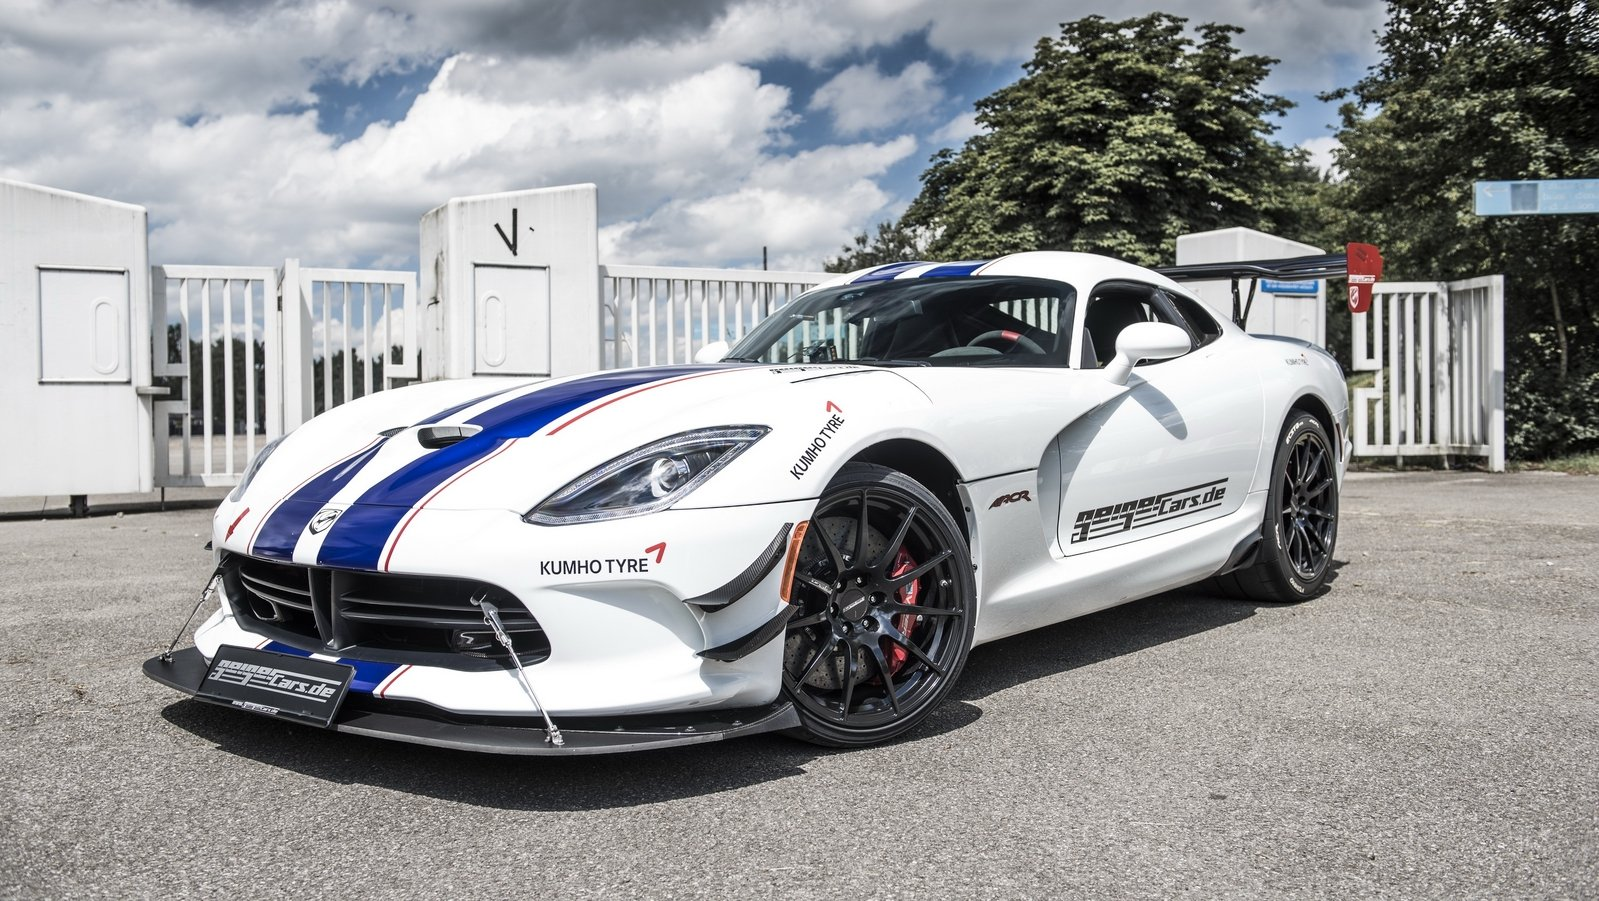 2016 Dodge Viper ACR By Geiger Cars | Top Speed